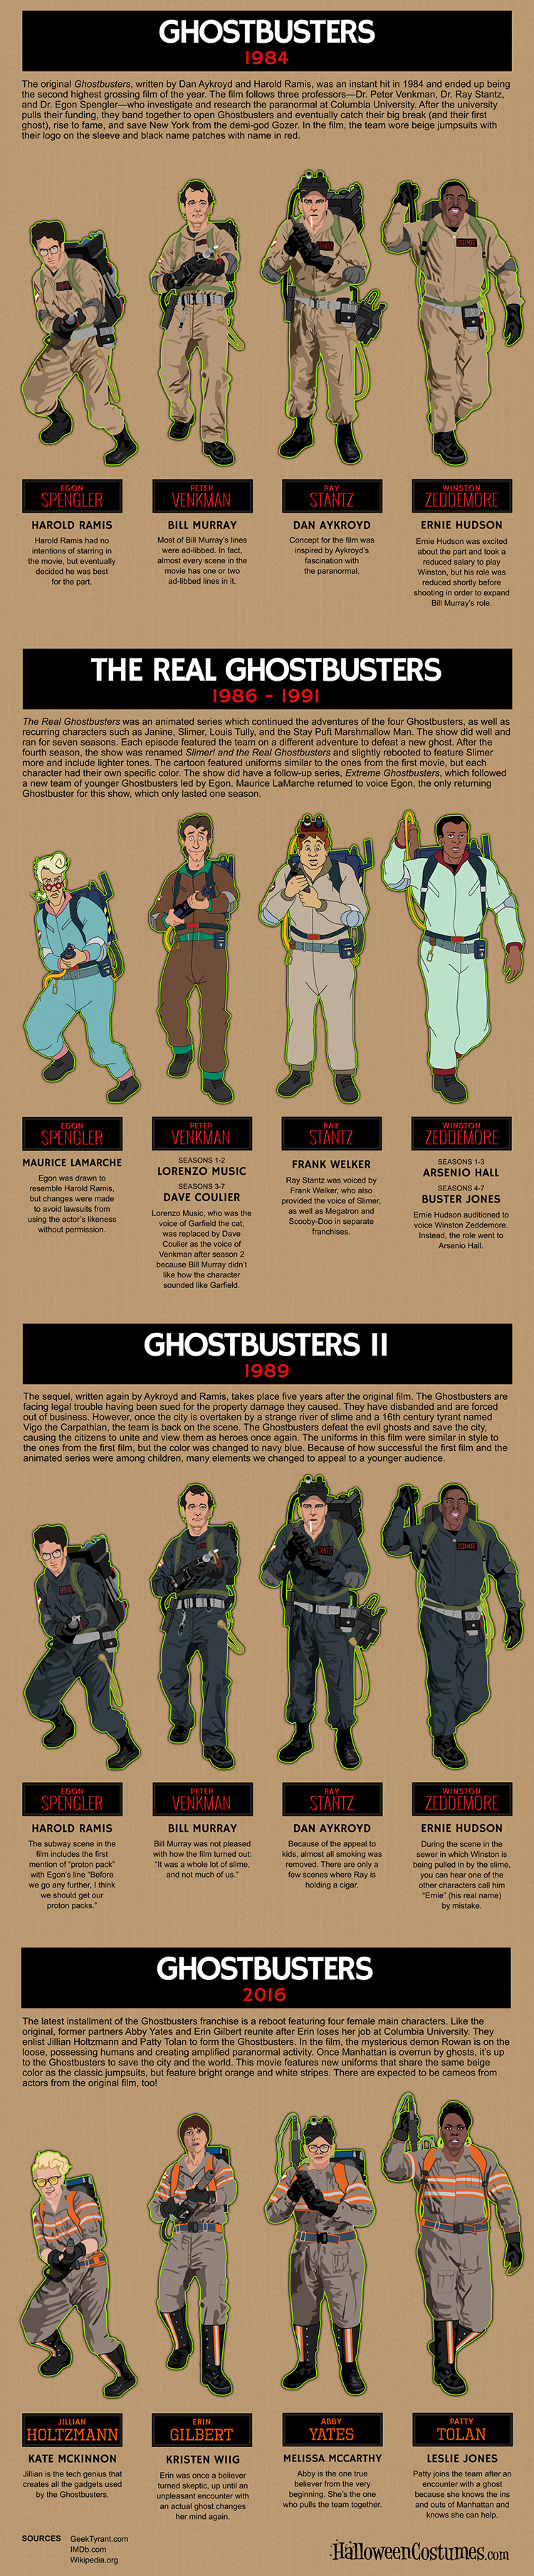 The Evolution of the Ghostbusters' Costumes